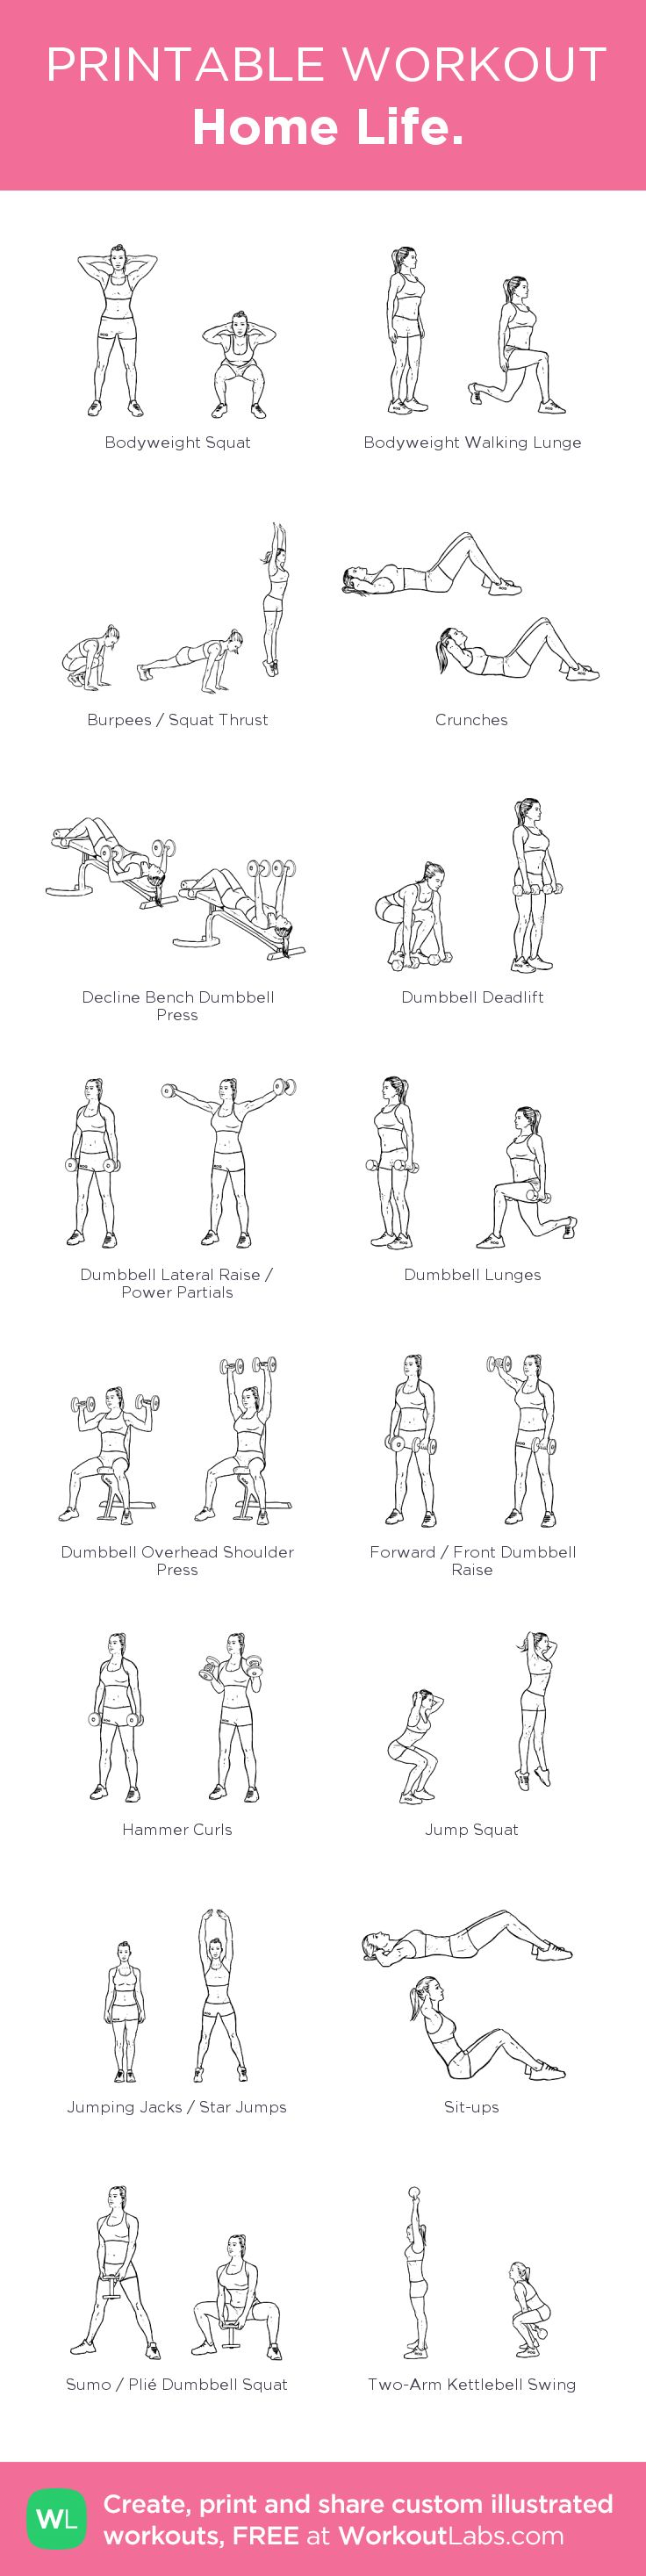 Home Life. –my custom workout created at WorkoutLabs.com • Click through to download as printable PDF! #customworkout